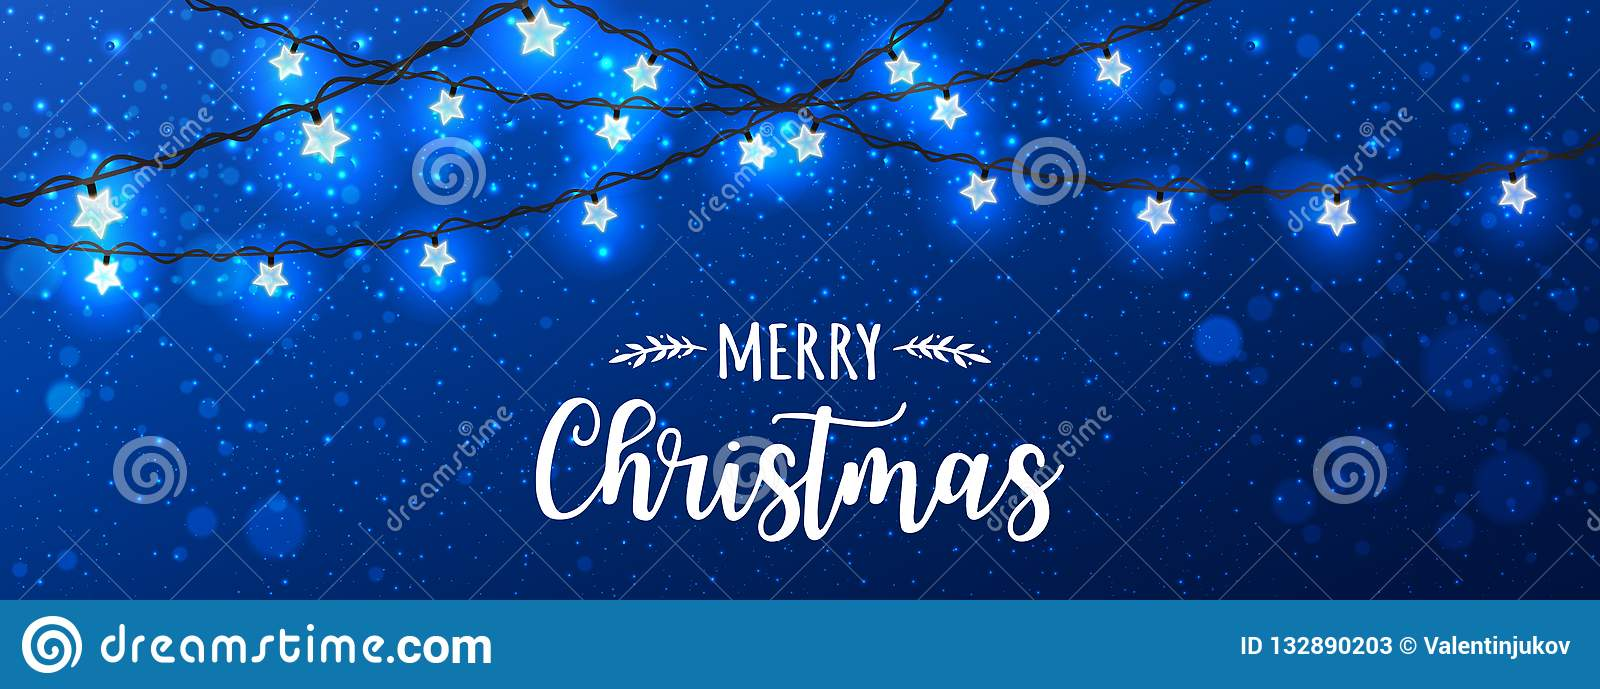 Merry Christmas Typographical on blue background with Xmas decorations glowing white garlands, light, stars